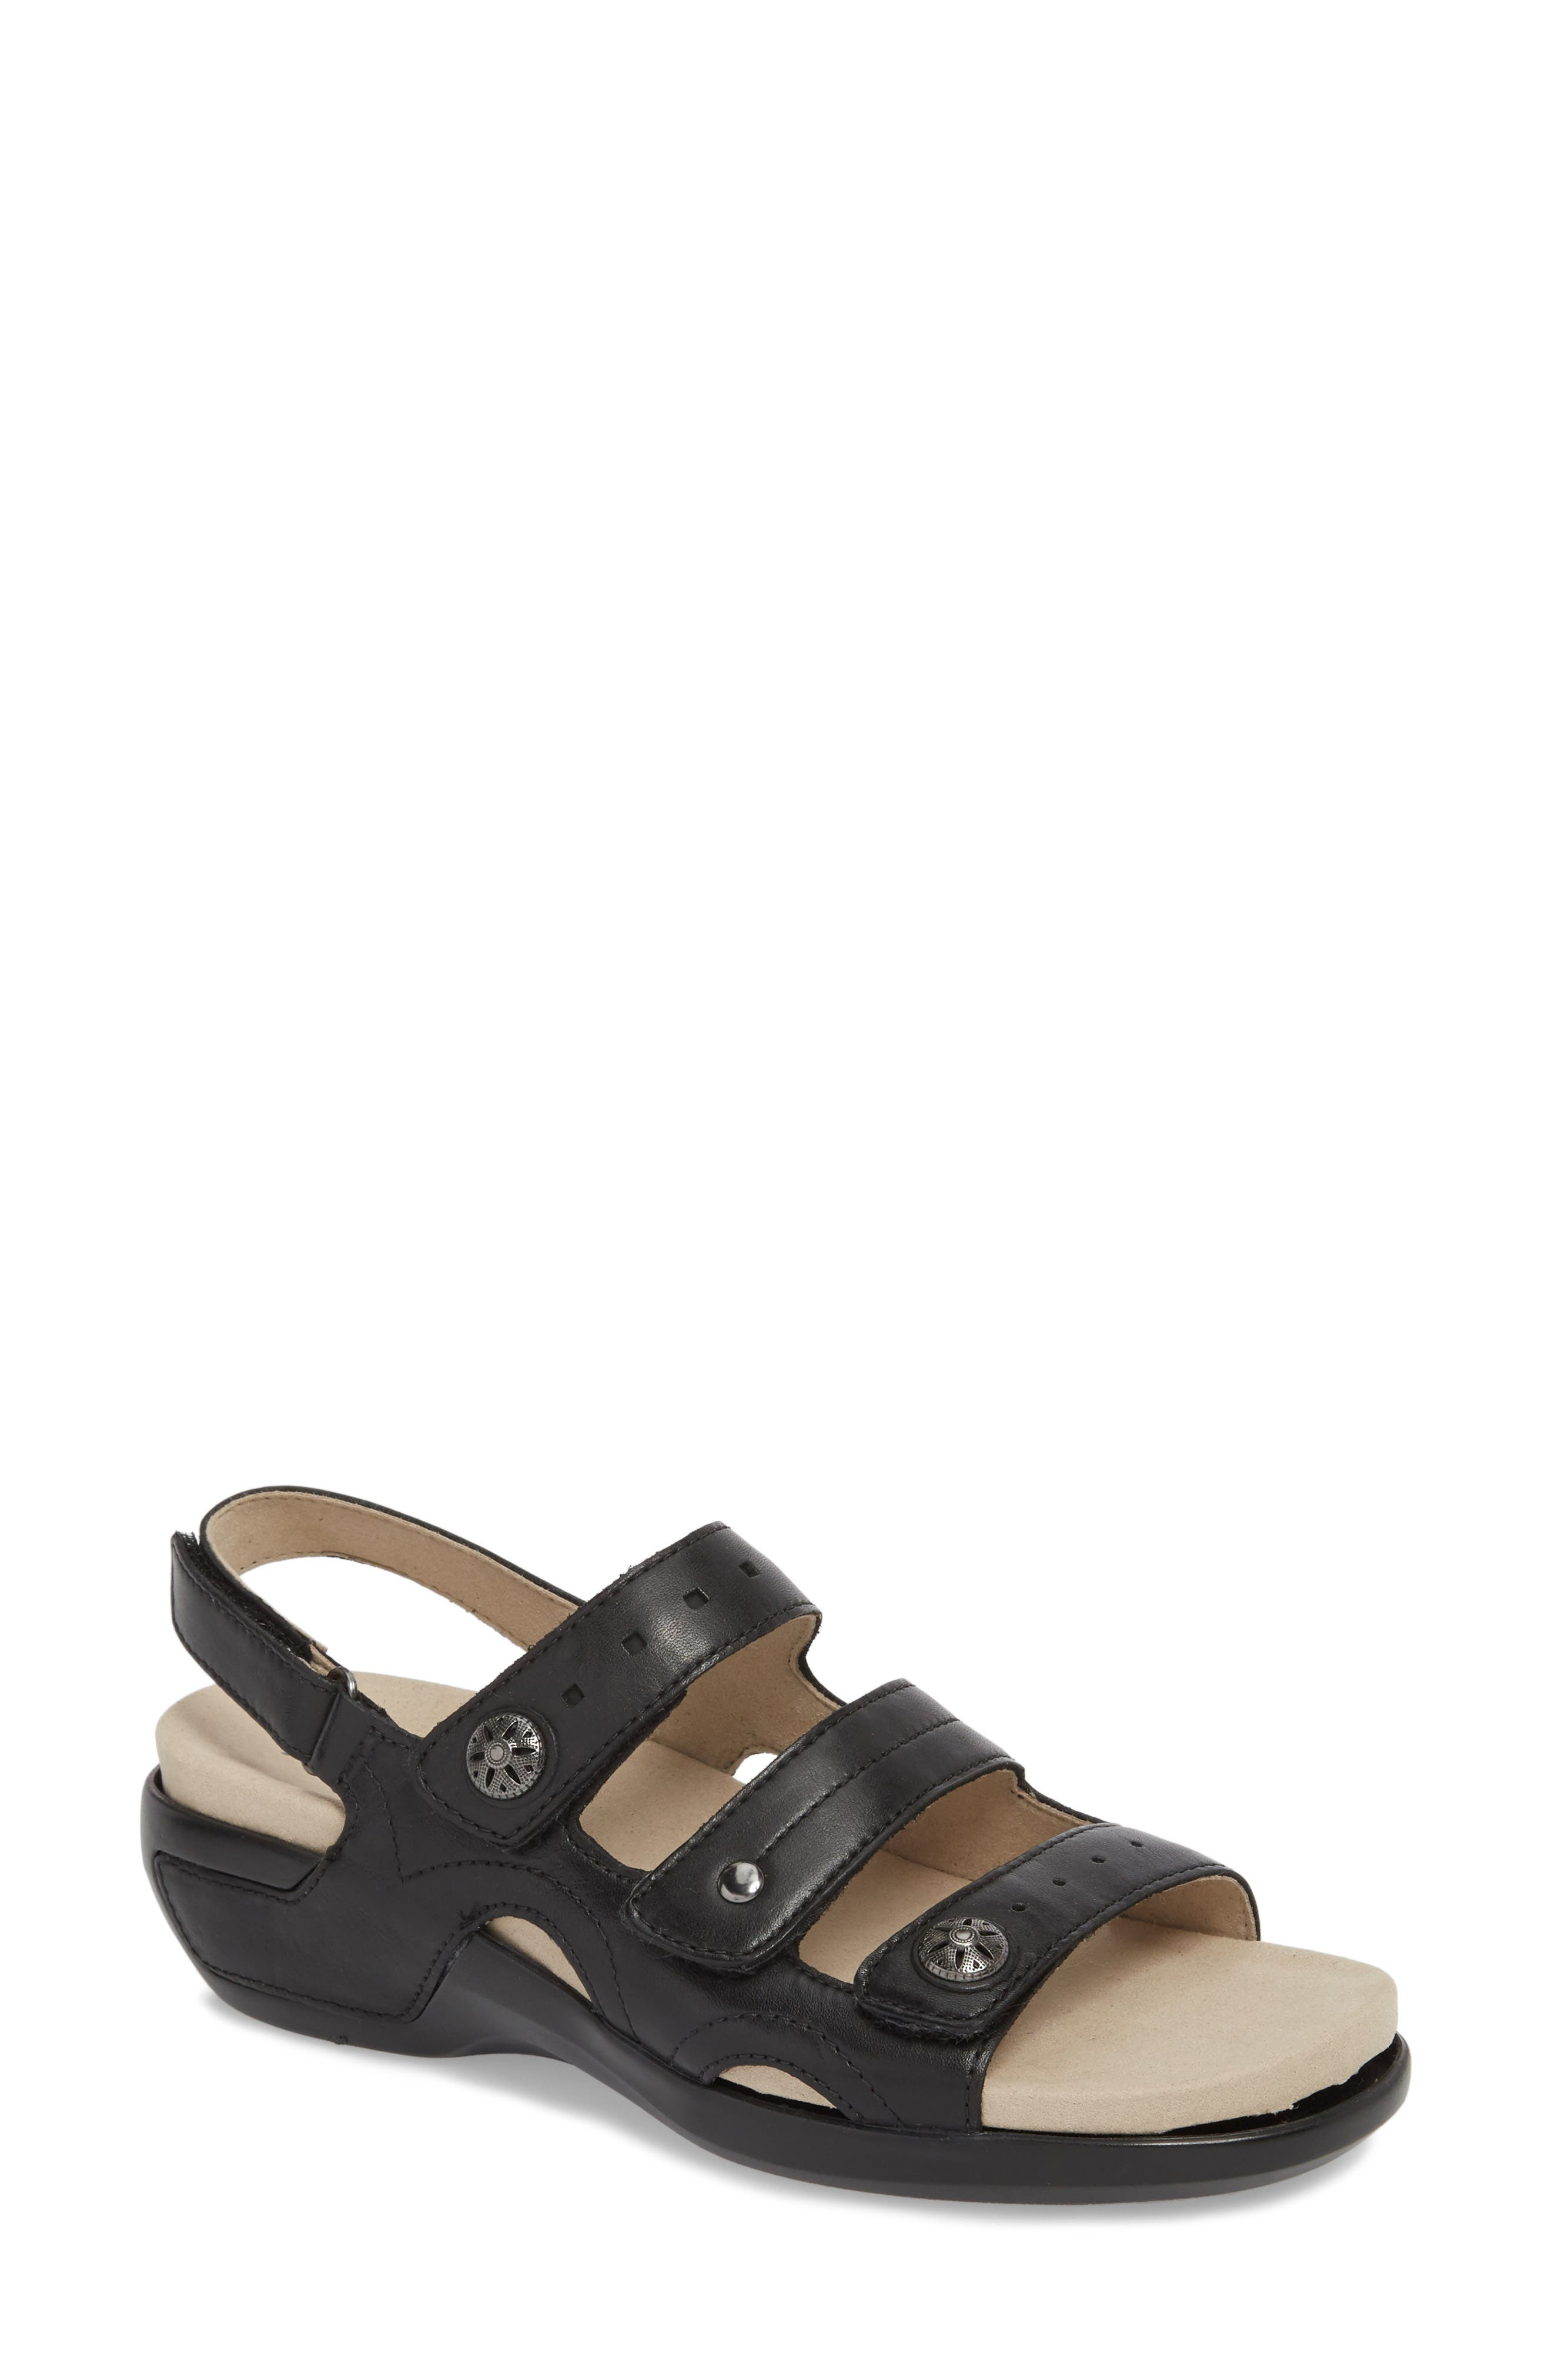 Three Strap Sandal,                         Main,                         color, BLACK LEATHER